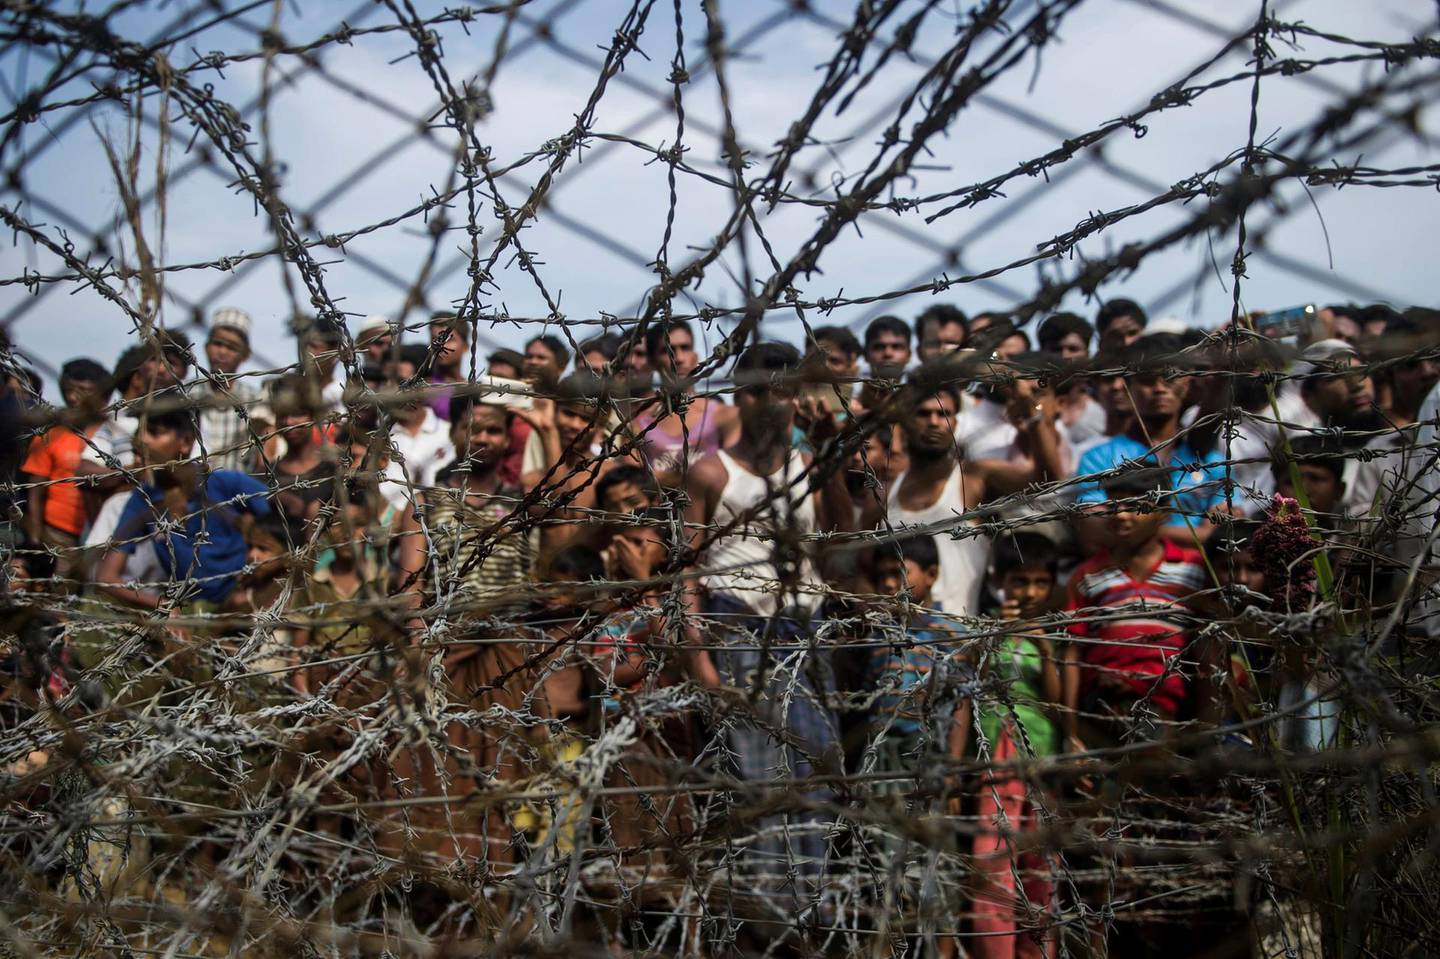 """(FILES) This file photo taken on April 25, 2018 shows Rohingya refugees gathered behind a barbed-wire fence at a temporary settlement setup in a """"no man's land"""" border zone between Myanmar and Bangladesh, near Maungdaw district in Myanmar's Rakhine state. Myanmar's stateless, conflict-scarred Rohingya community are on edge with the return of military rule, fearing further violence in a restive part of the country where others have shown support for the new regime. - TO GO WITH Myanmar-politics-military-Rohingya-Rakhine,FOCUS   / AFP / Ye Aung THU / TO GO WITH Myanmar-politics-military-Rohingya-Rakhine,FOCUS"""